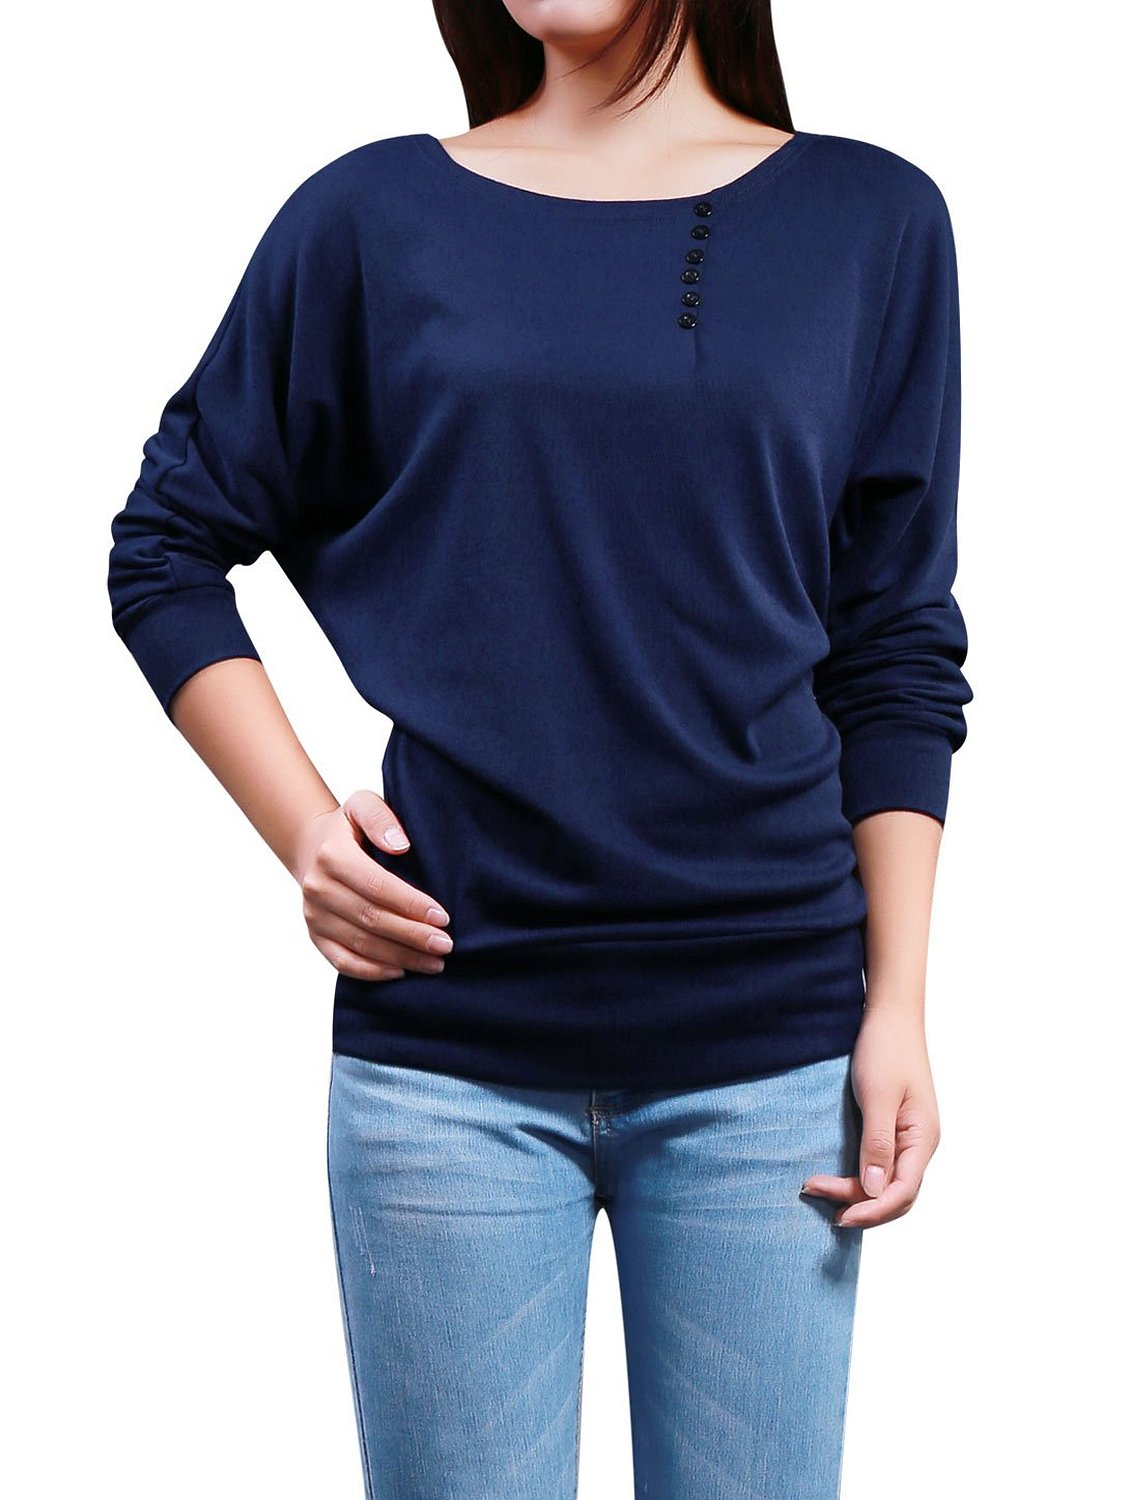 Allegra K Women Batwing Sleeves Pullover Tops Casual Slim T Shirt at Amazon Women's Clothing store